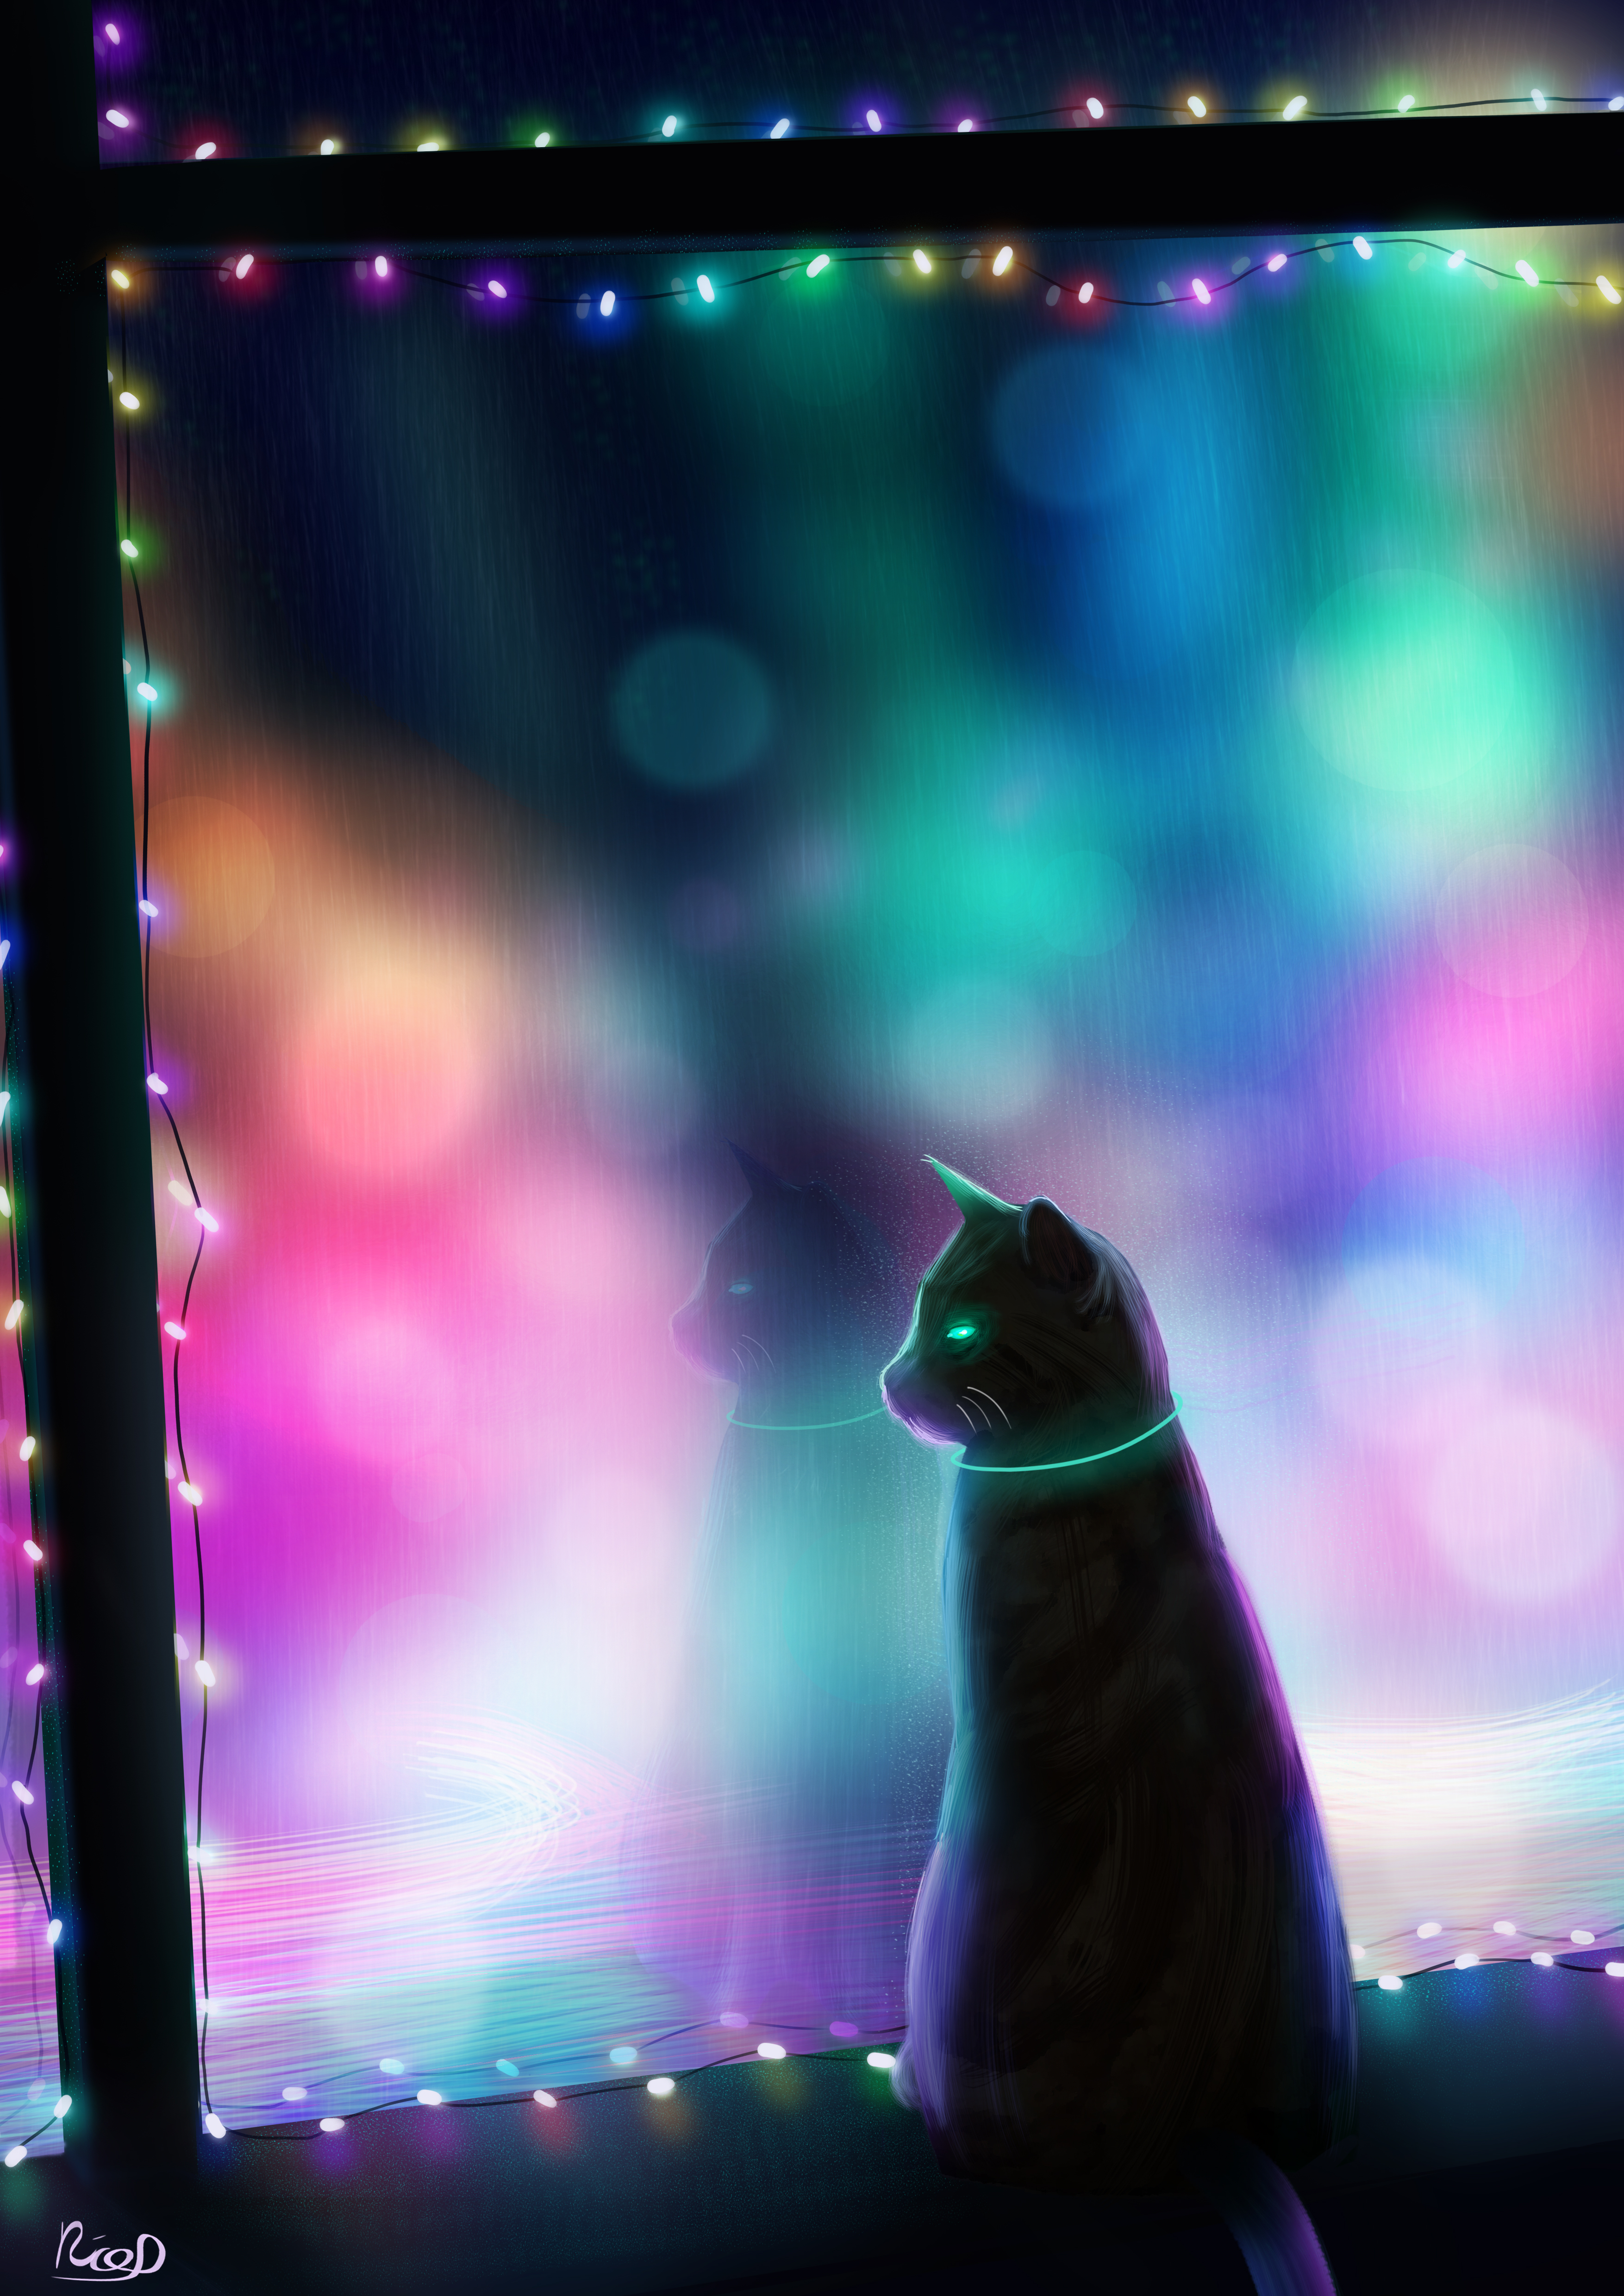 155512 download wallpaper Art, Multicolored, Motley, Cat, Window, Garland screensavers and pictures for free